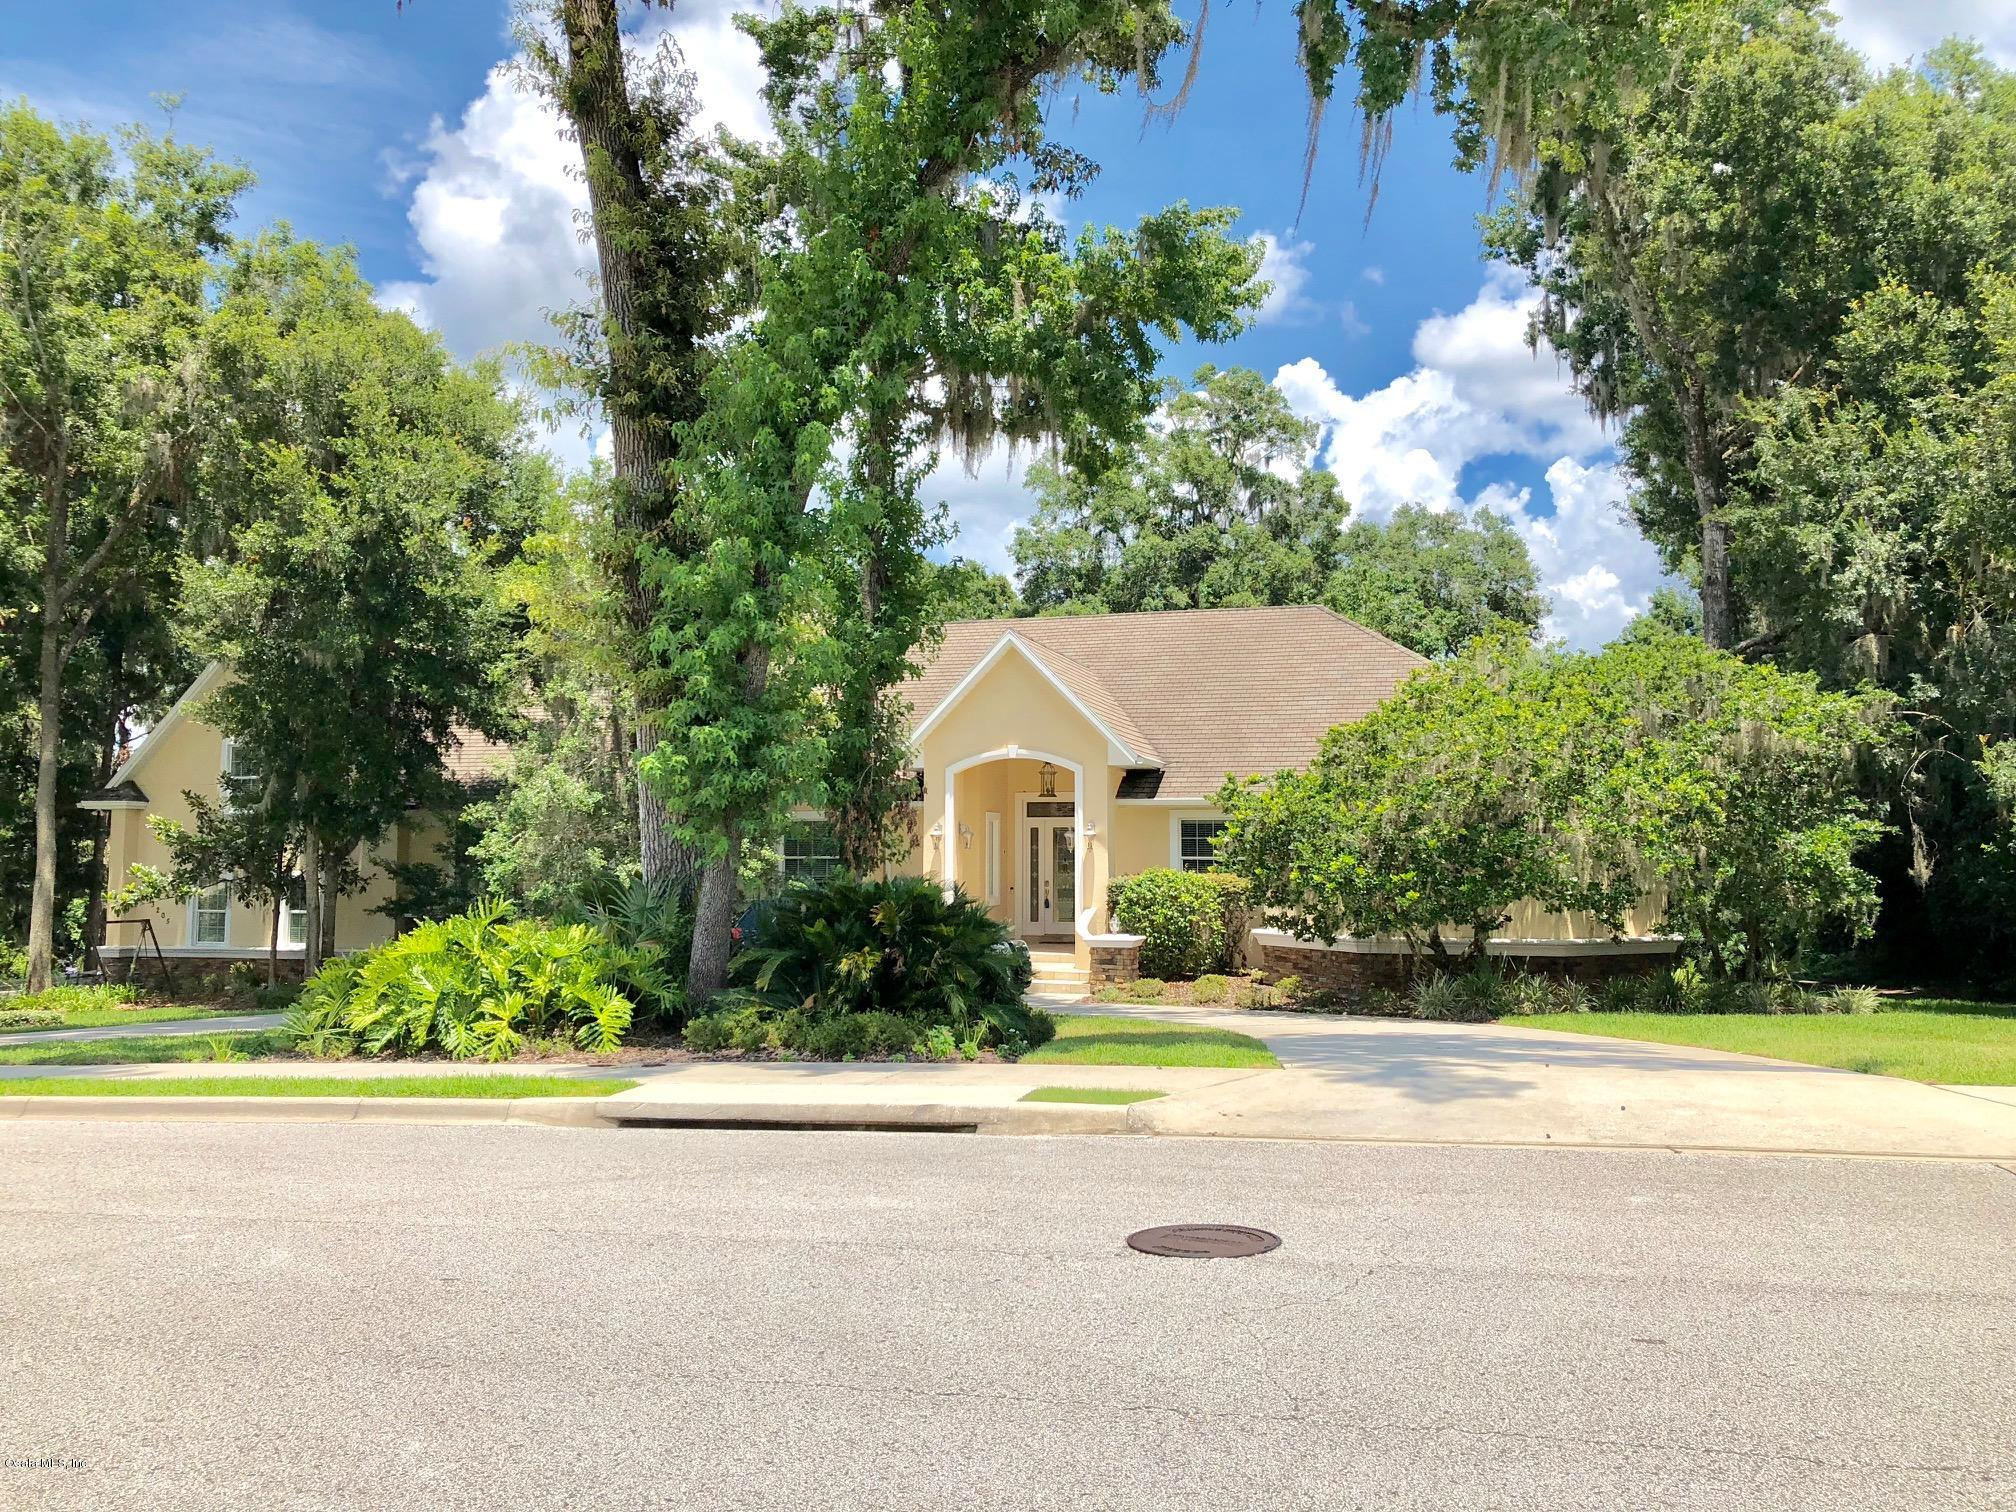 3205 SE 17TH COURT, OCALA, FL 34471